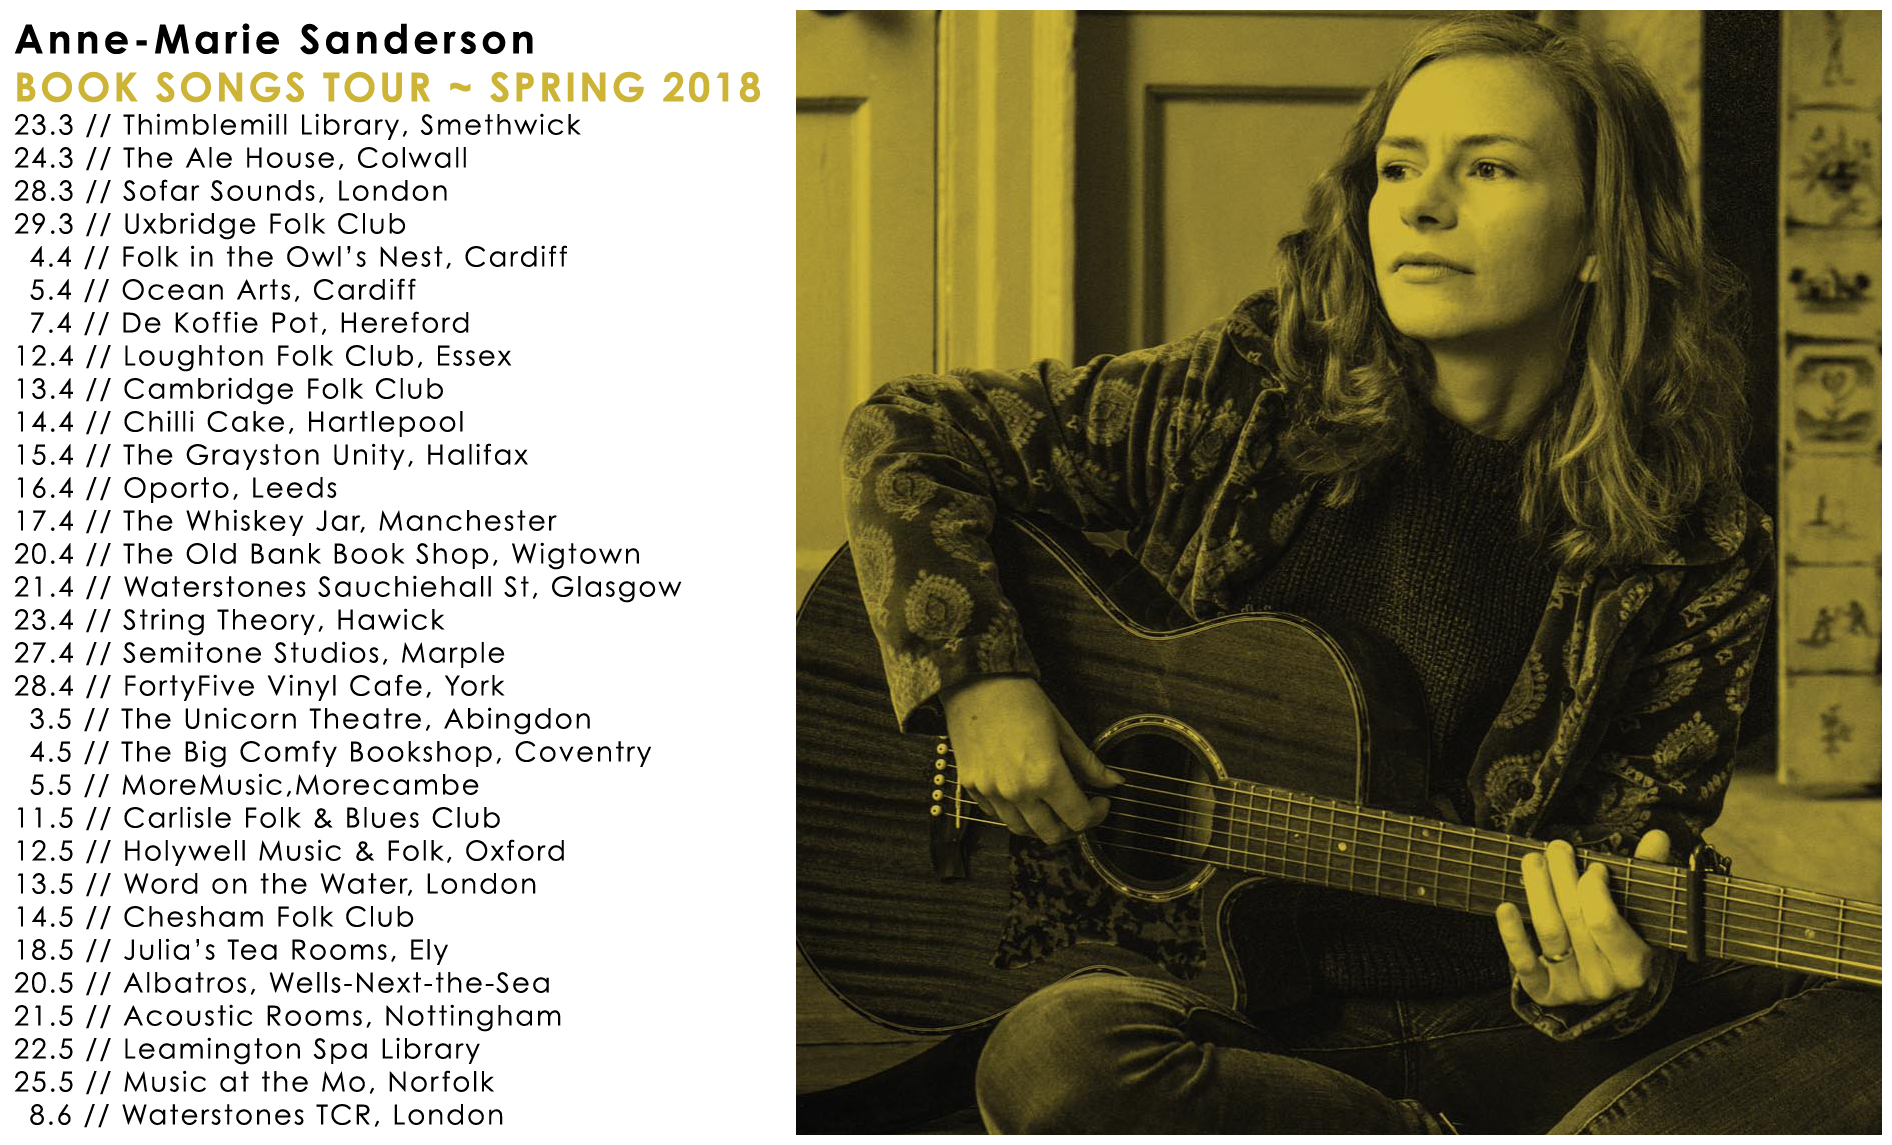 Book Songs tour date graphic 1.jpg